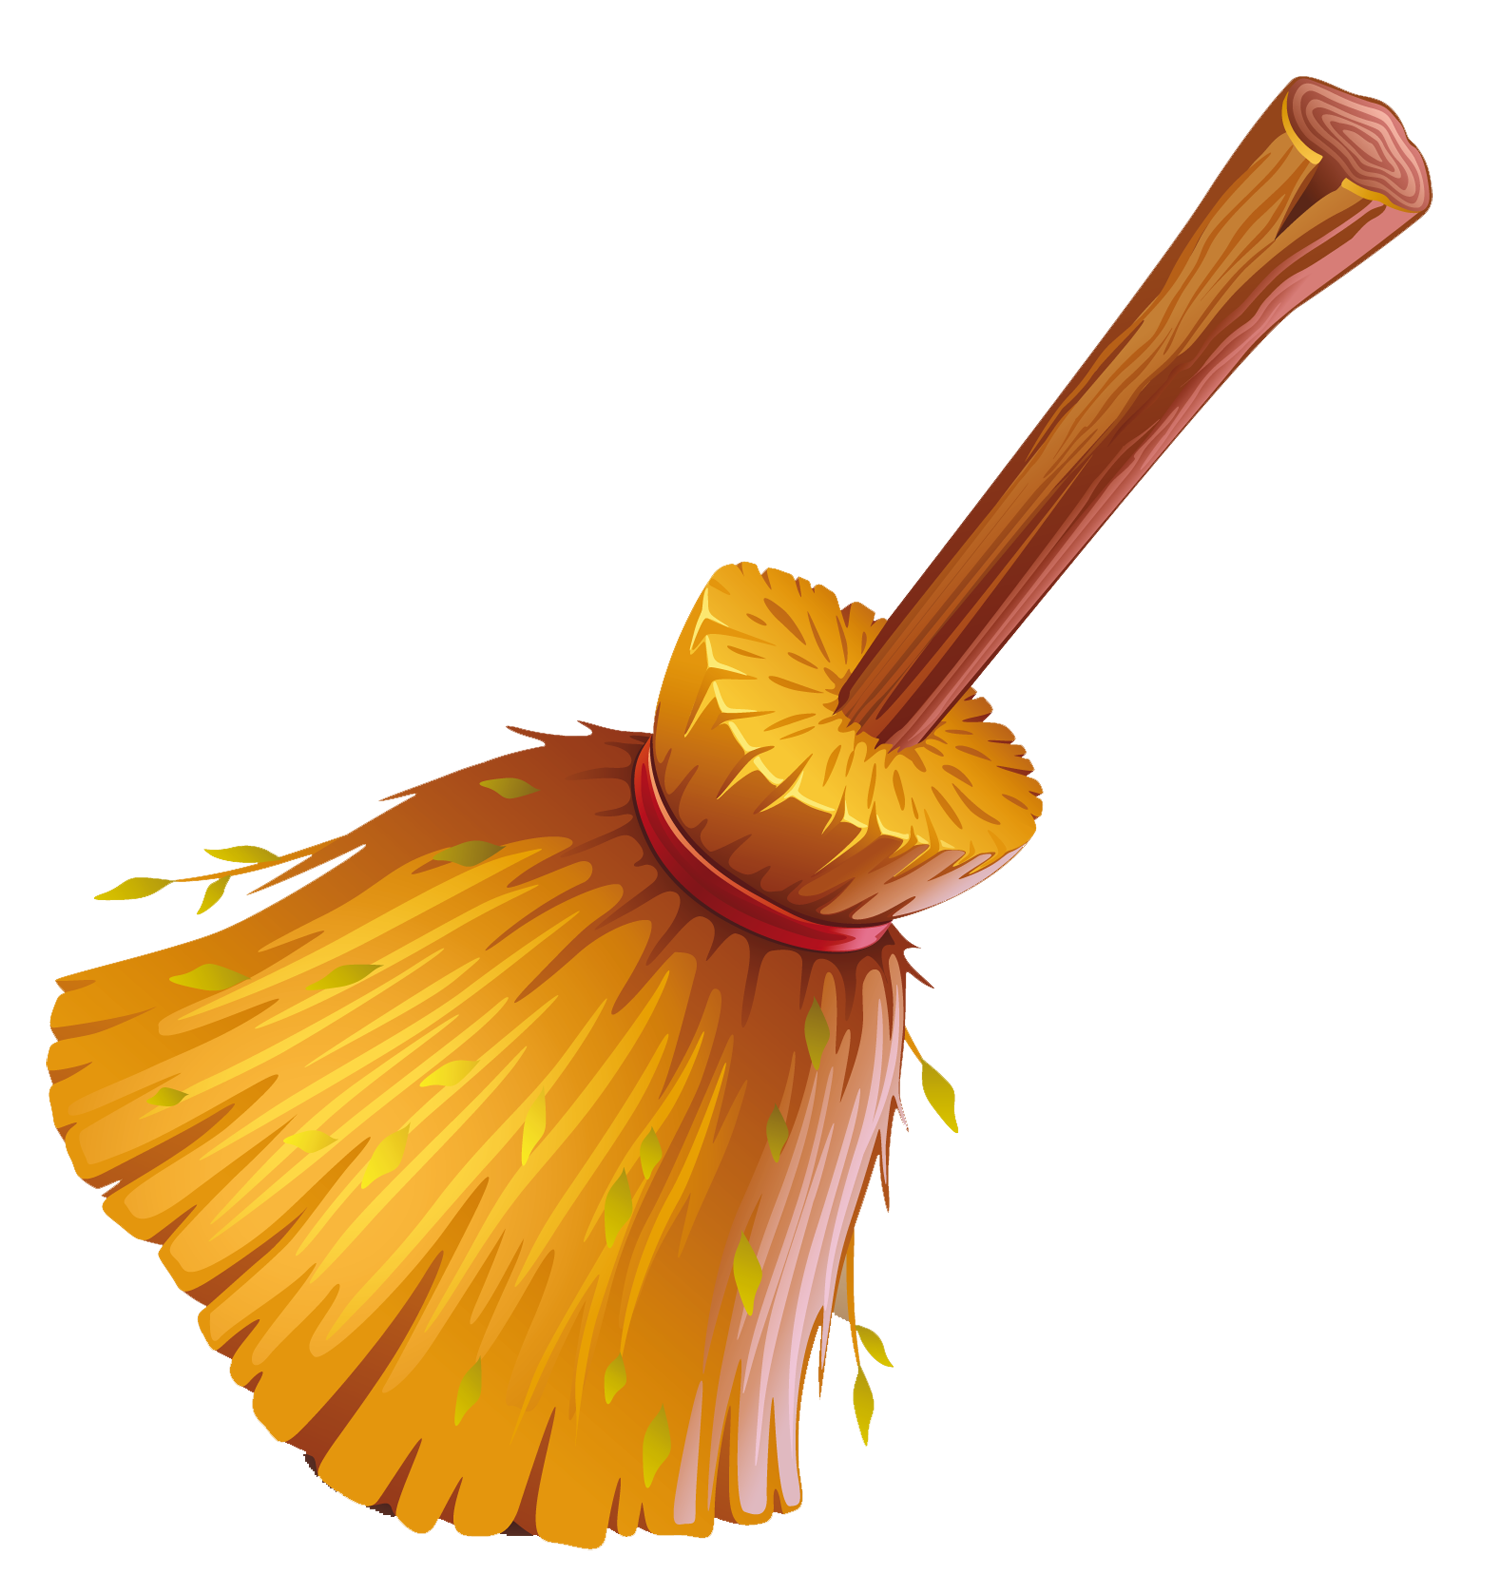 Free broom cliparts.